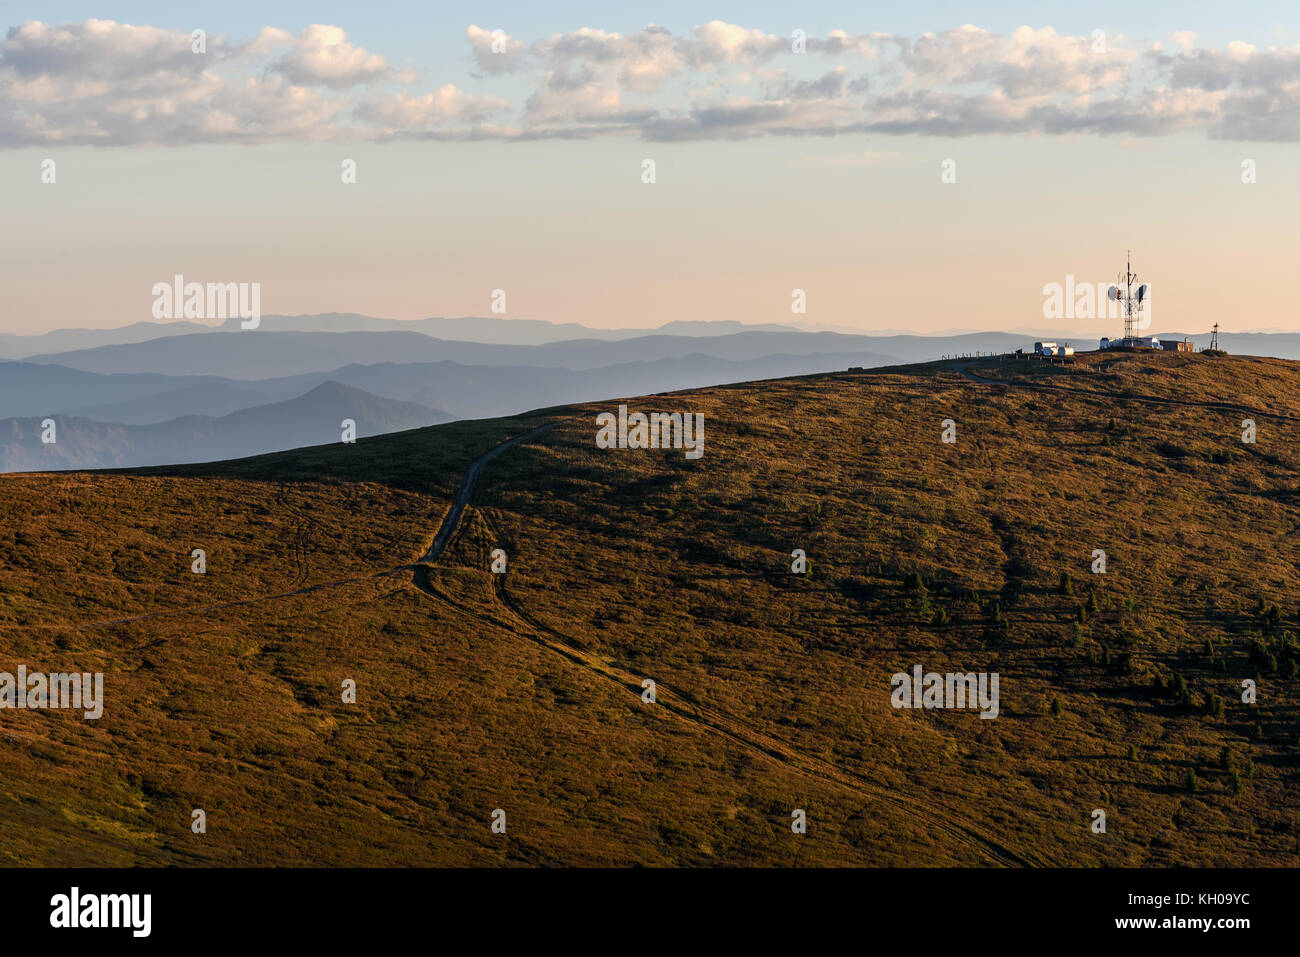 Scenic view with the repeater and telecommunications tower on top of a mountain road and trees at sunrise - Stock Image